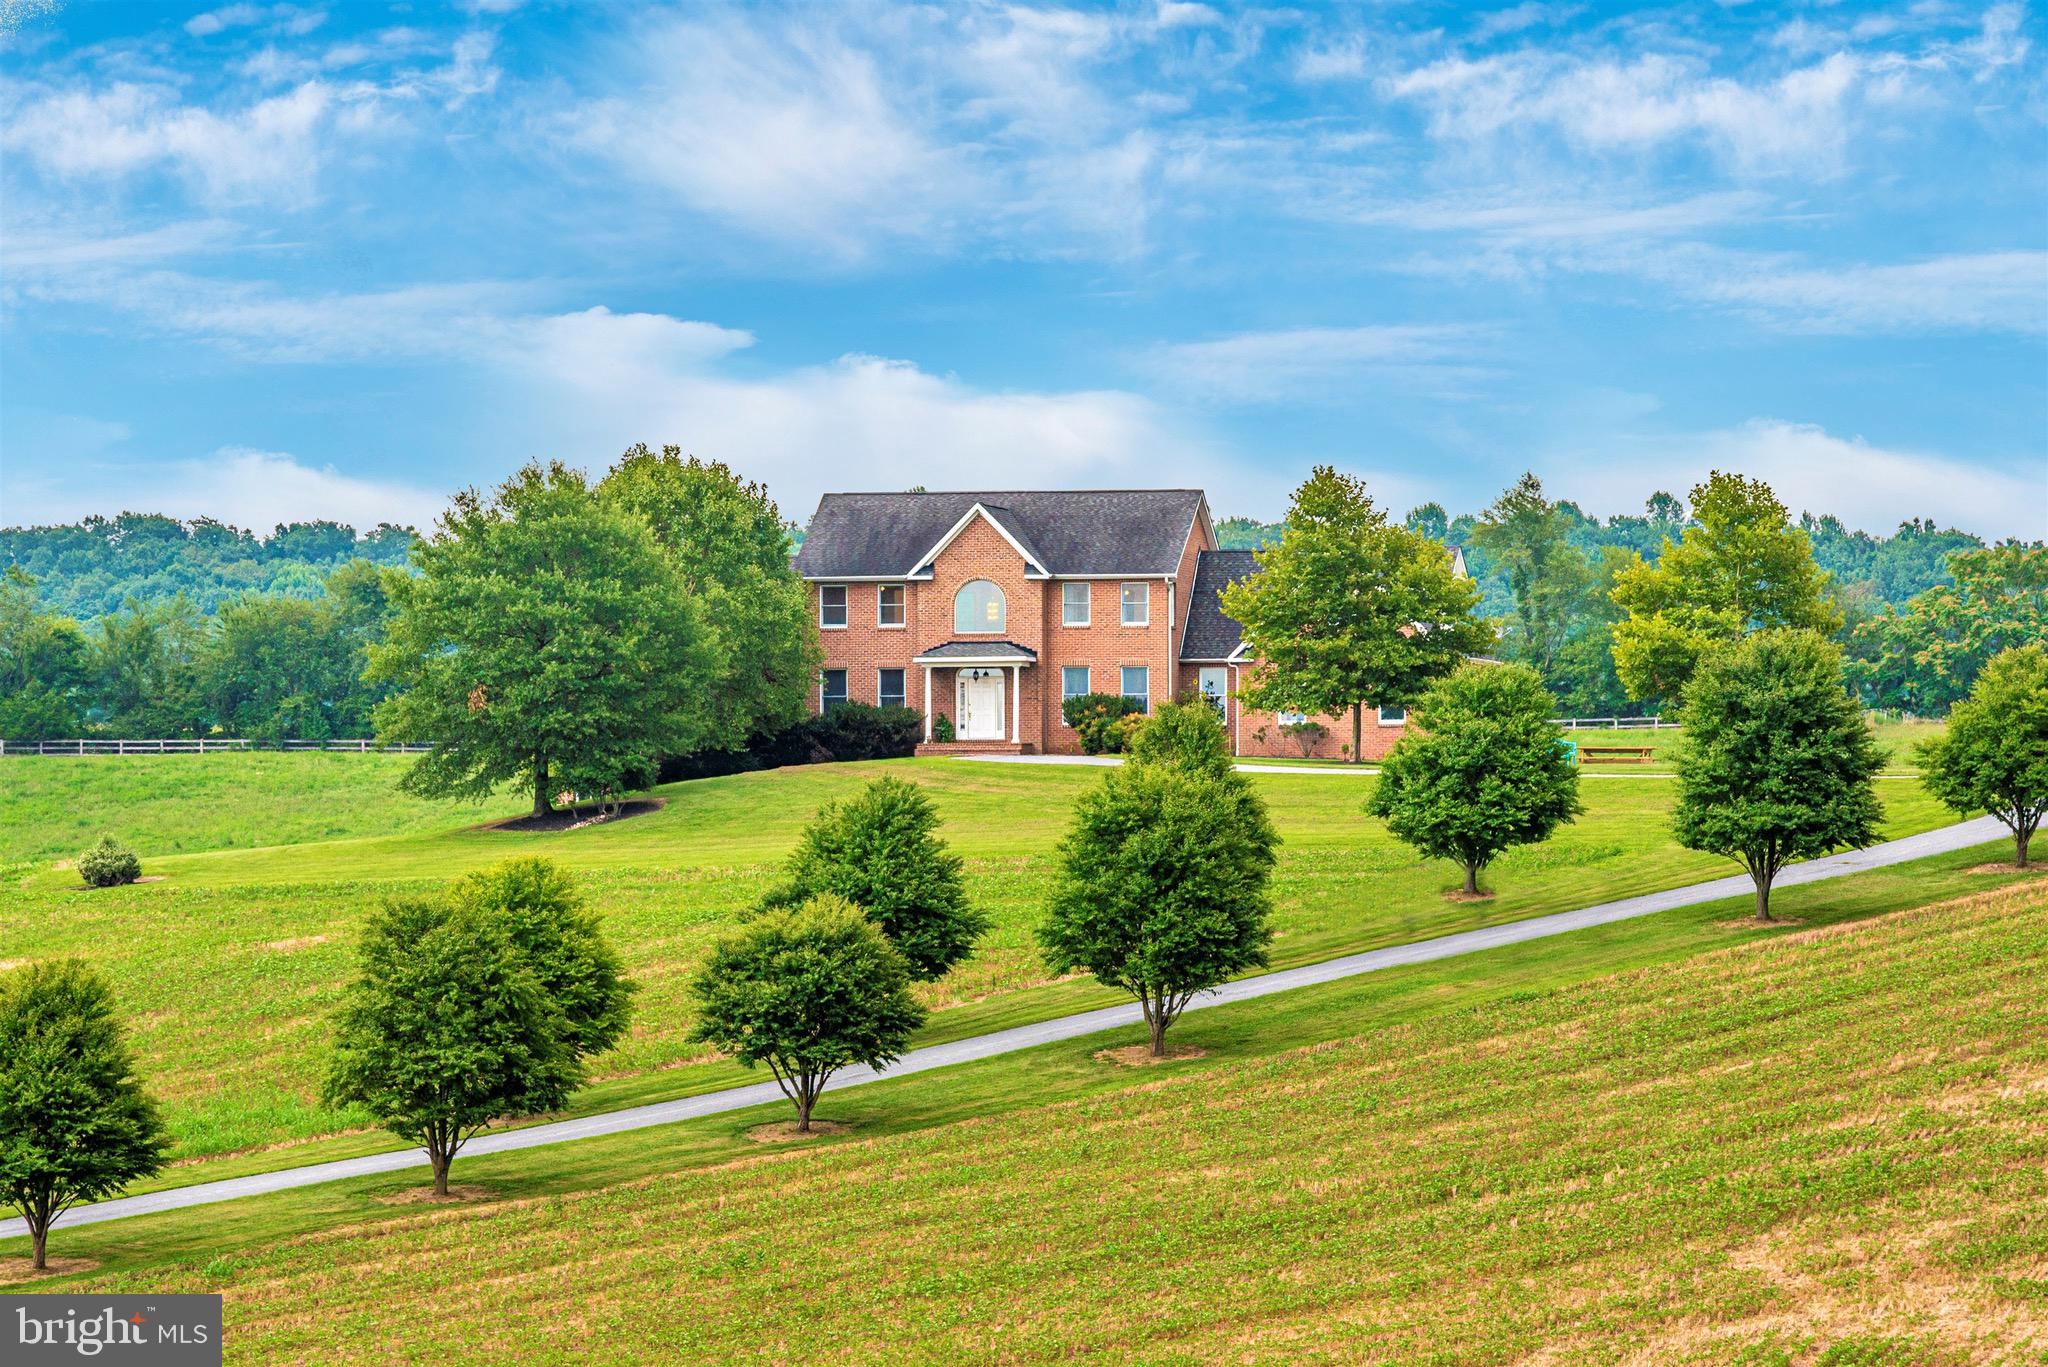 8950 Albaugh Rd, Mount Airy, MD, 21771